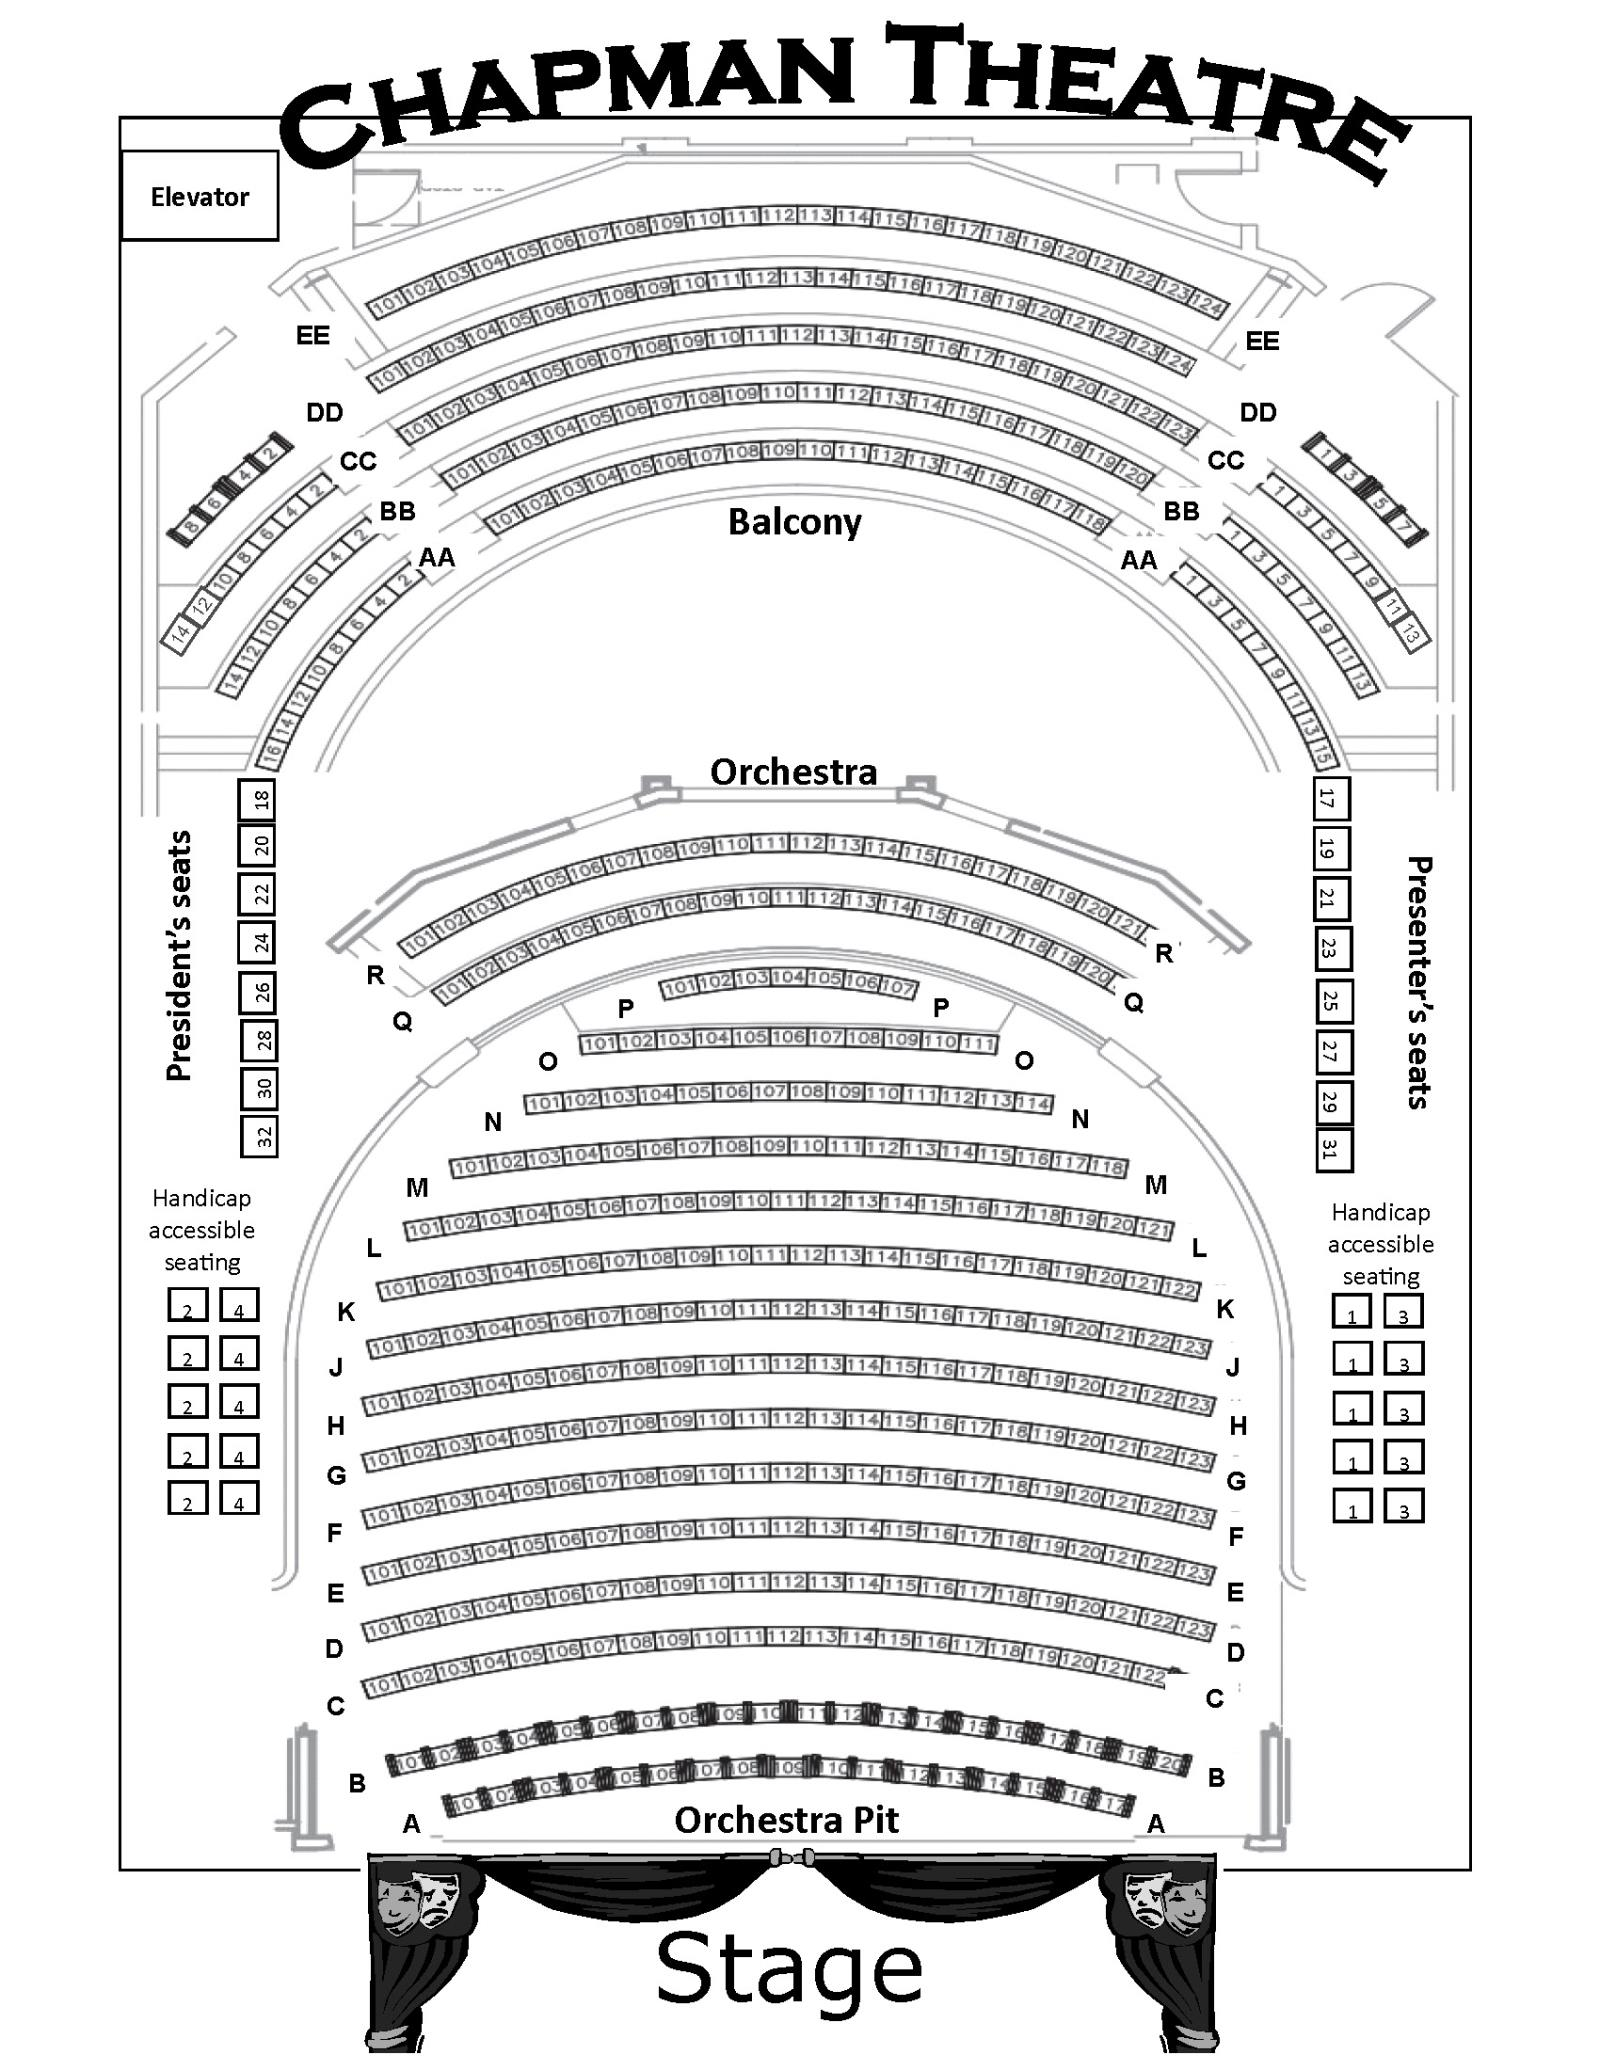 Theatre_Seating_Chart.jpg